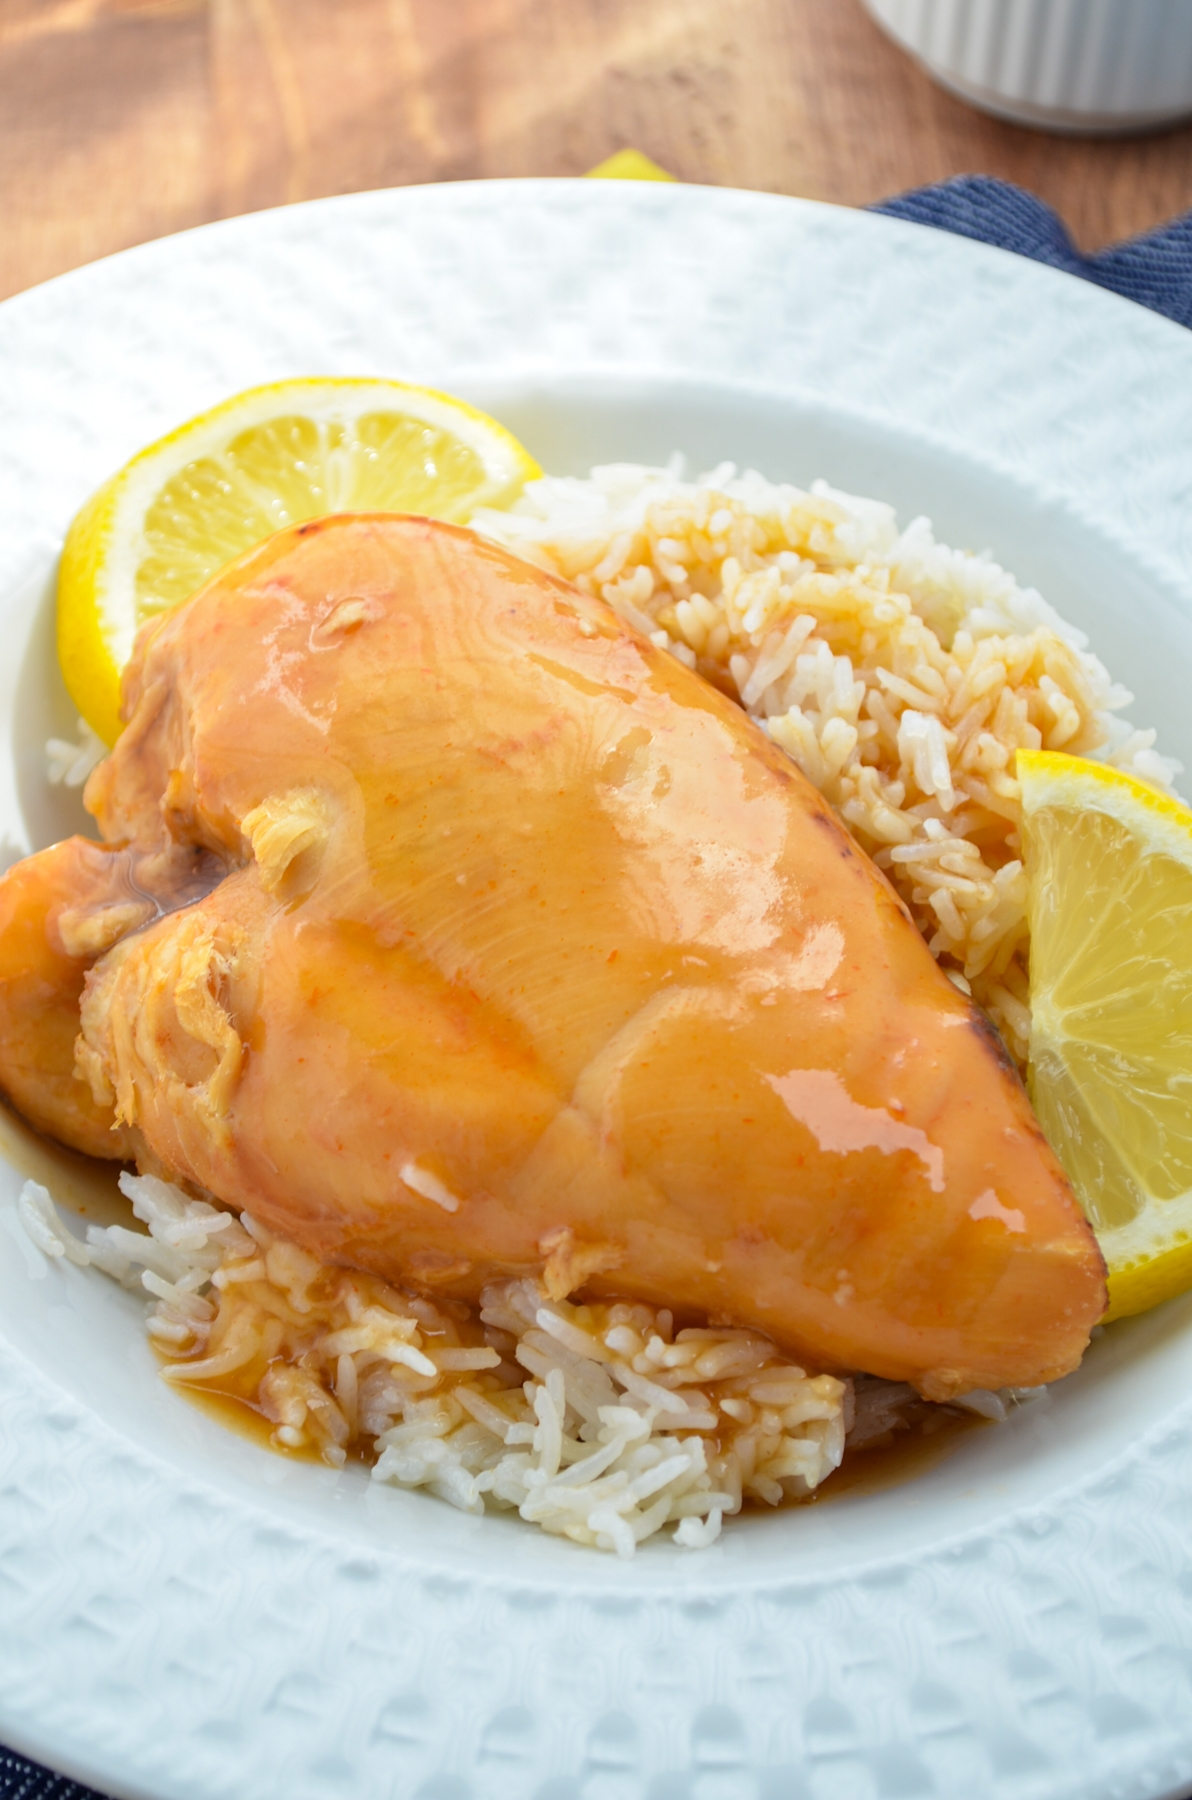 Slow cooker lemonade chicken, served on a bed of rice.